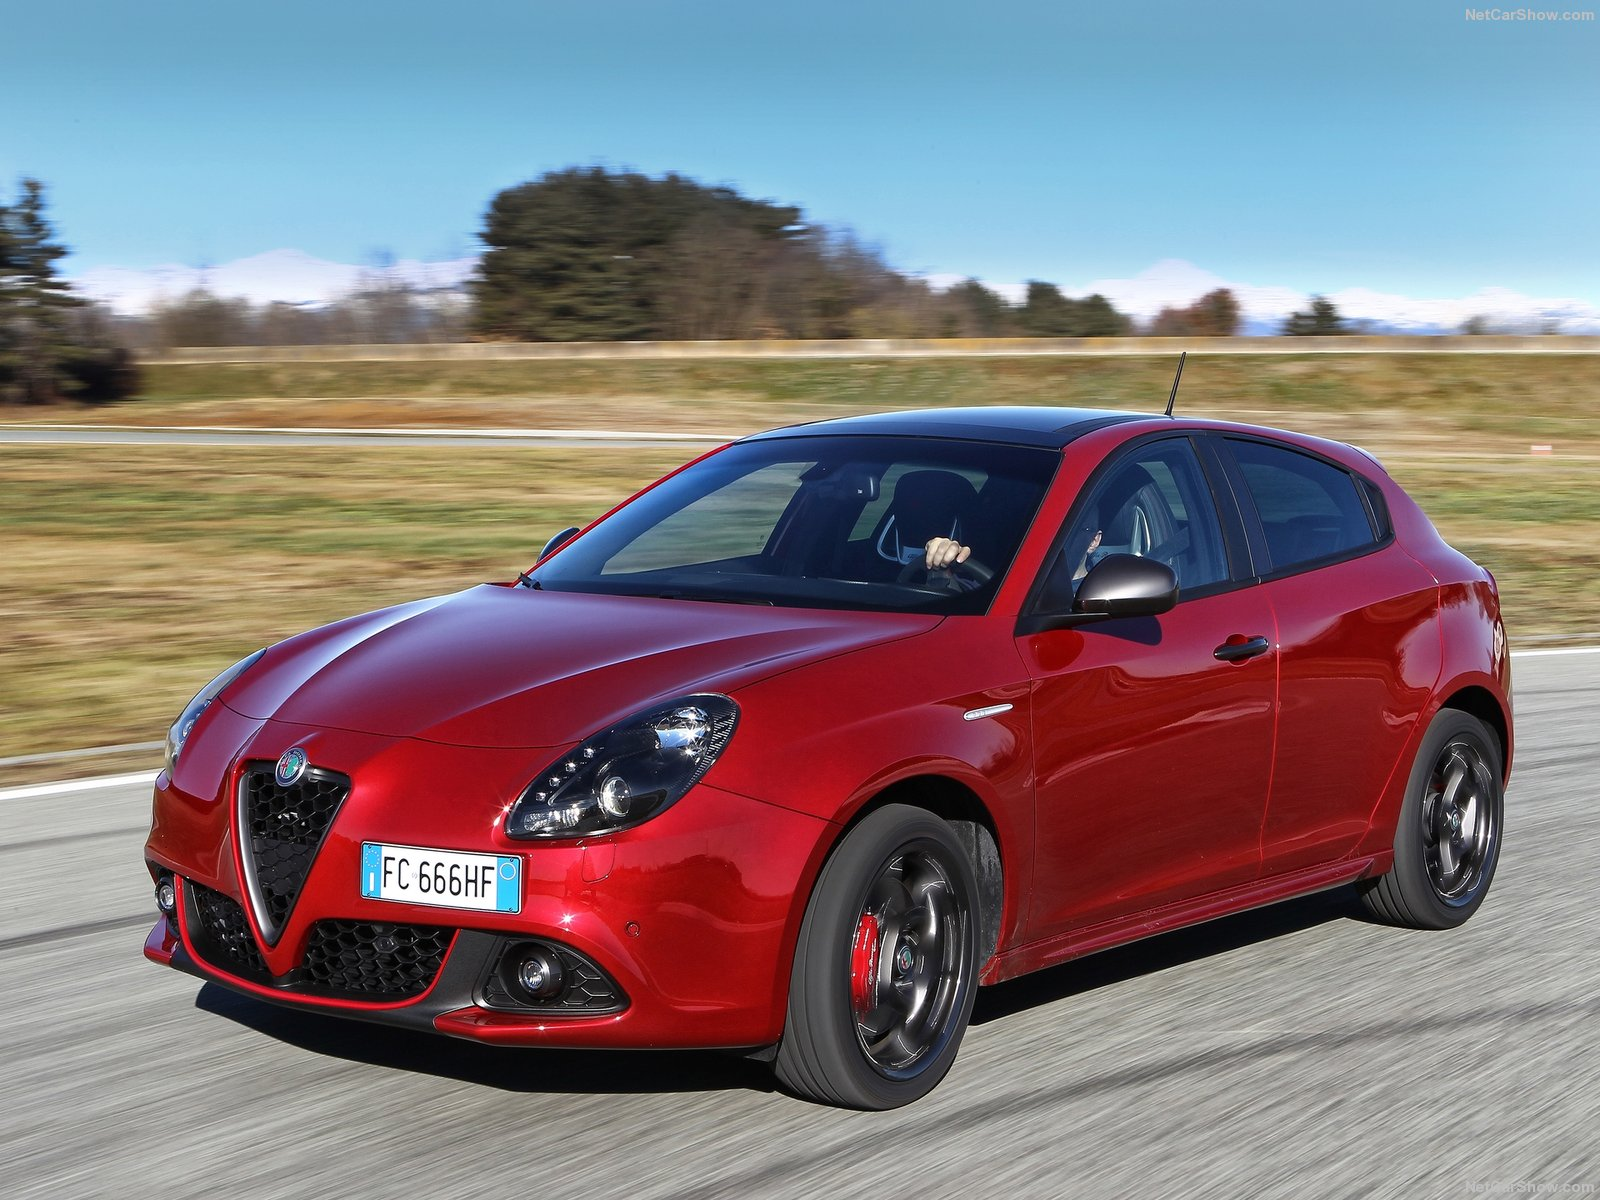 Alfa romeo mito price in egypt